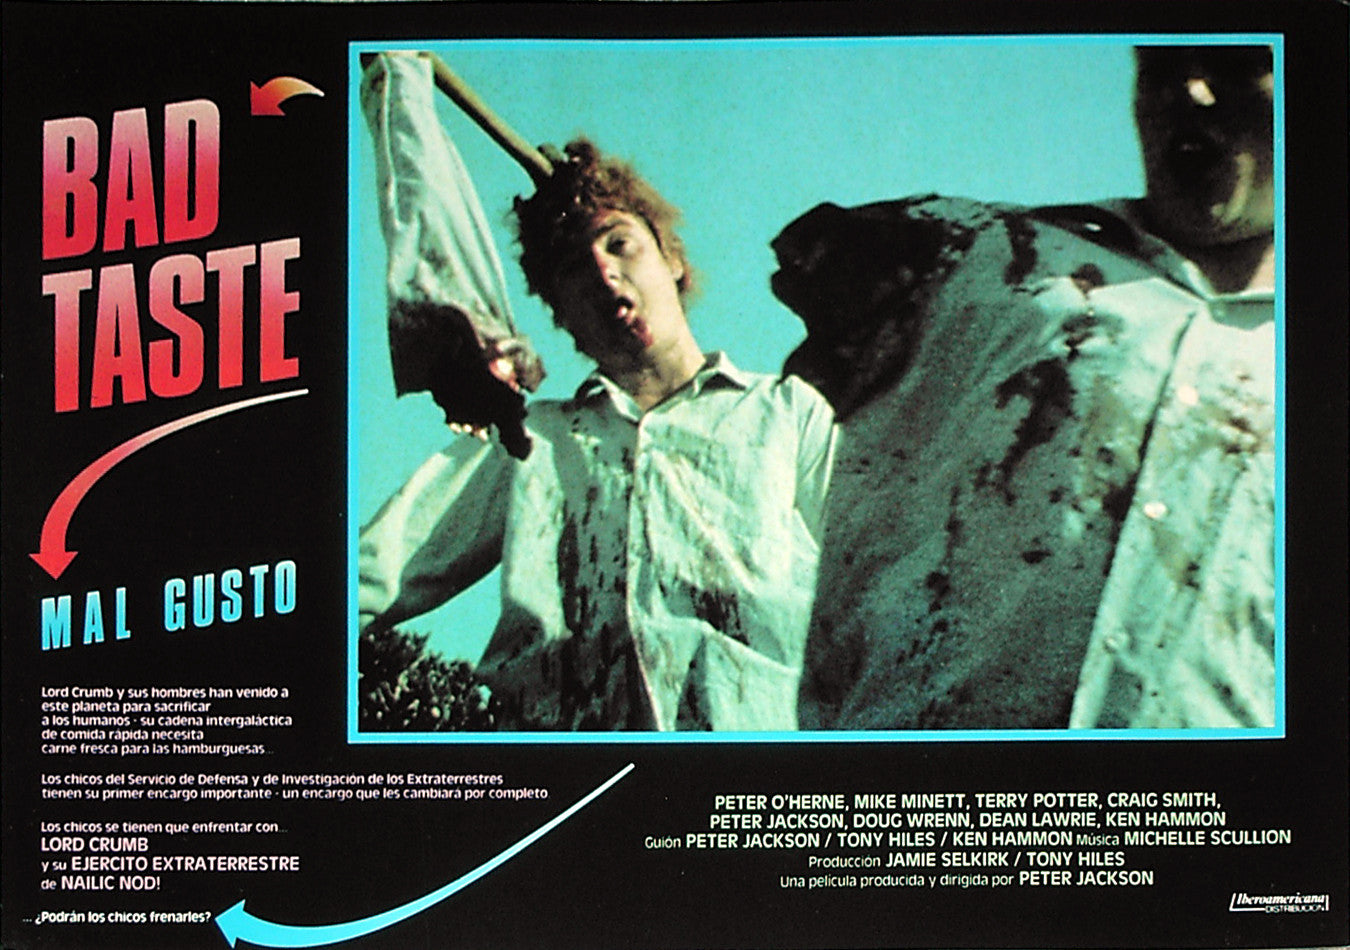 BAD TASTE - Spanish lobby card v8